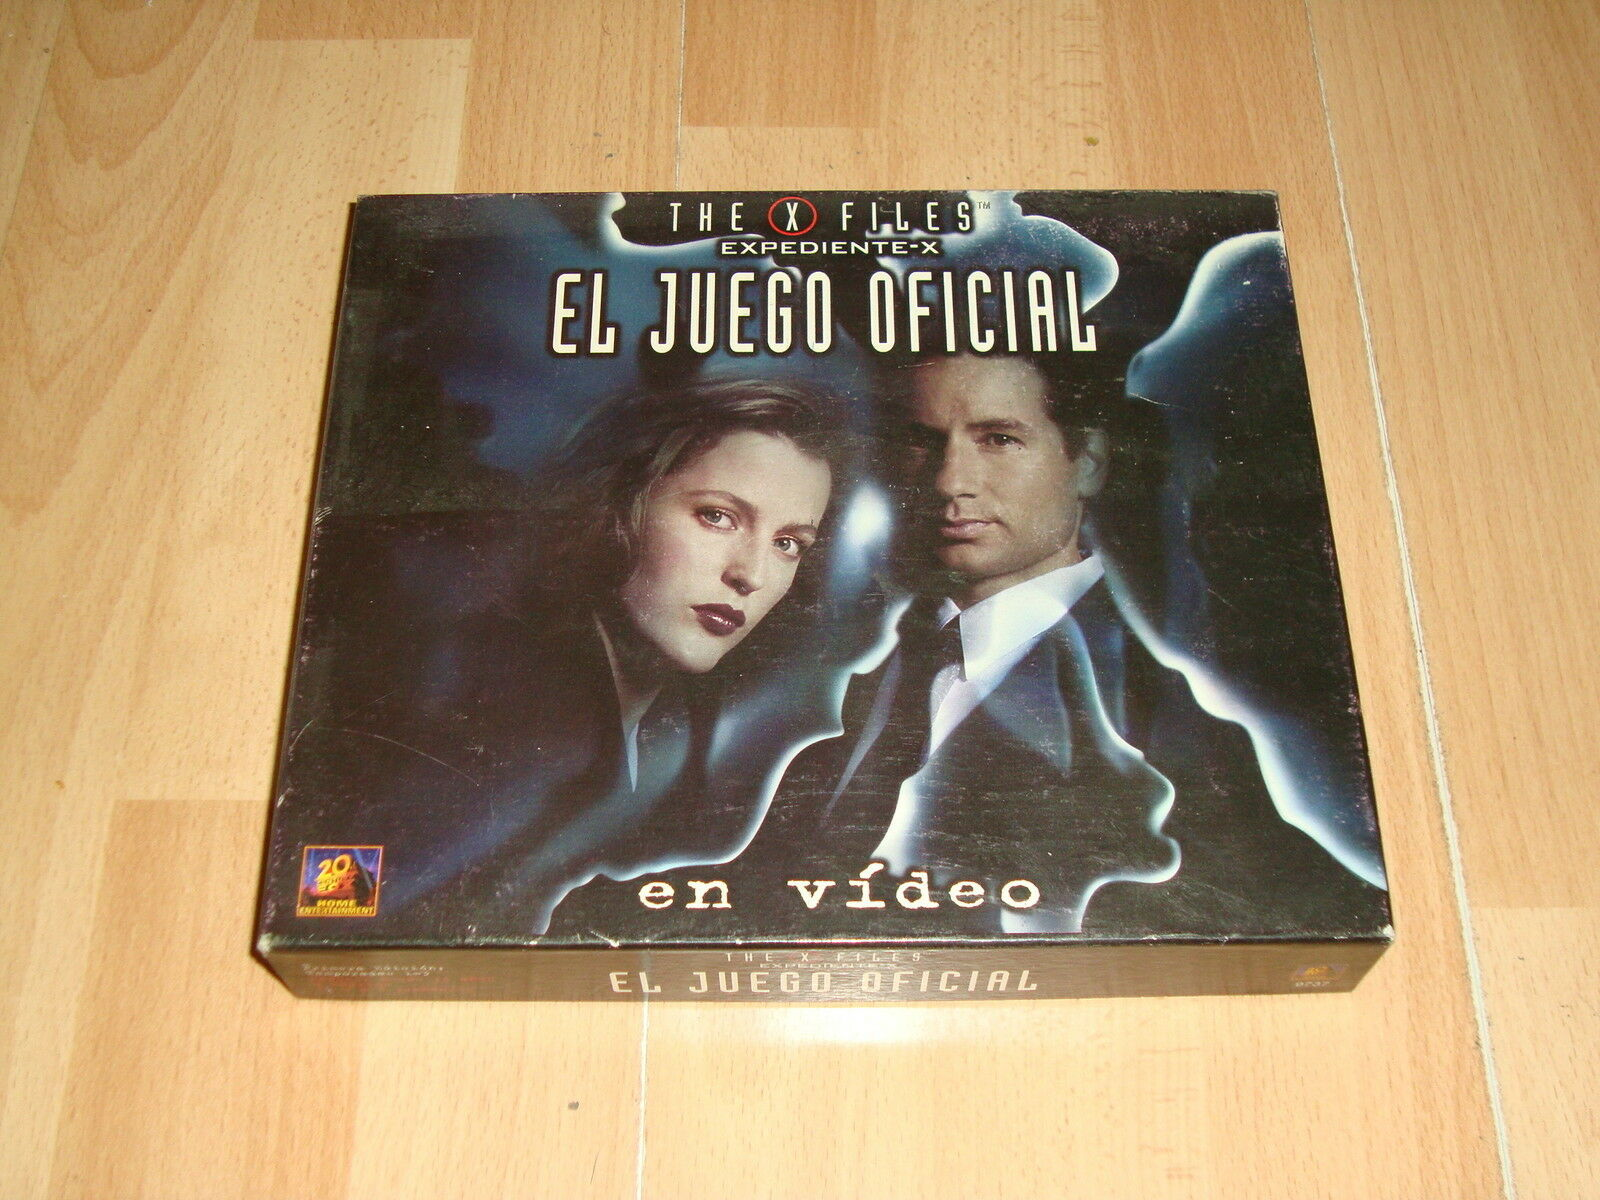 THE X FILES EXPEDIENTE X EL JUEGO OFICIAL DE MESA CONTIENE CINTA VHS DE VIDEO